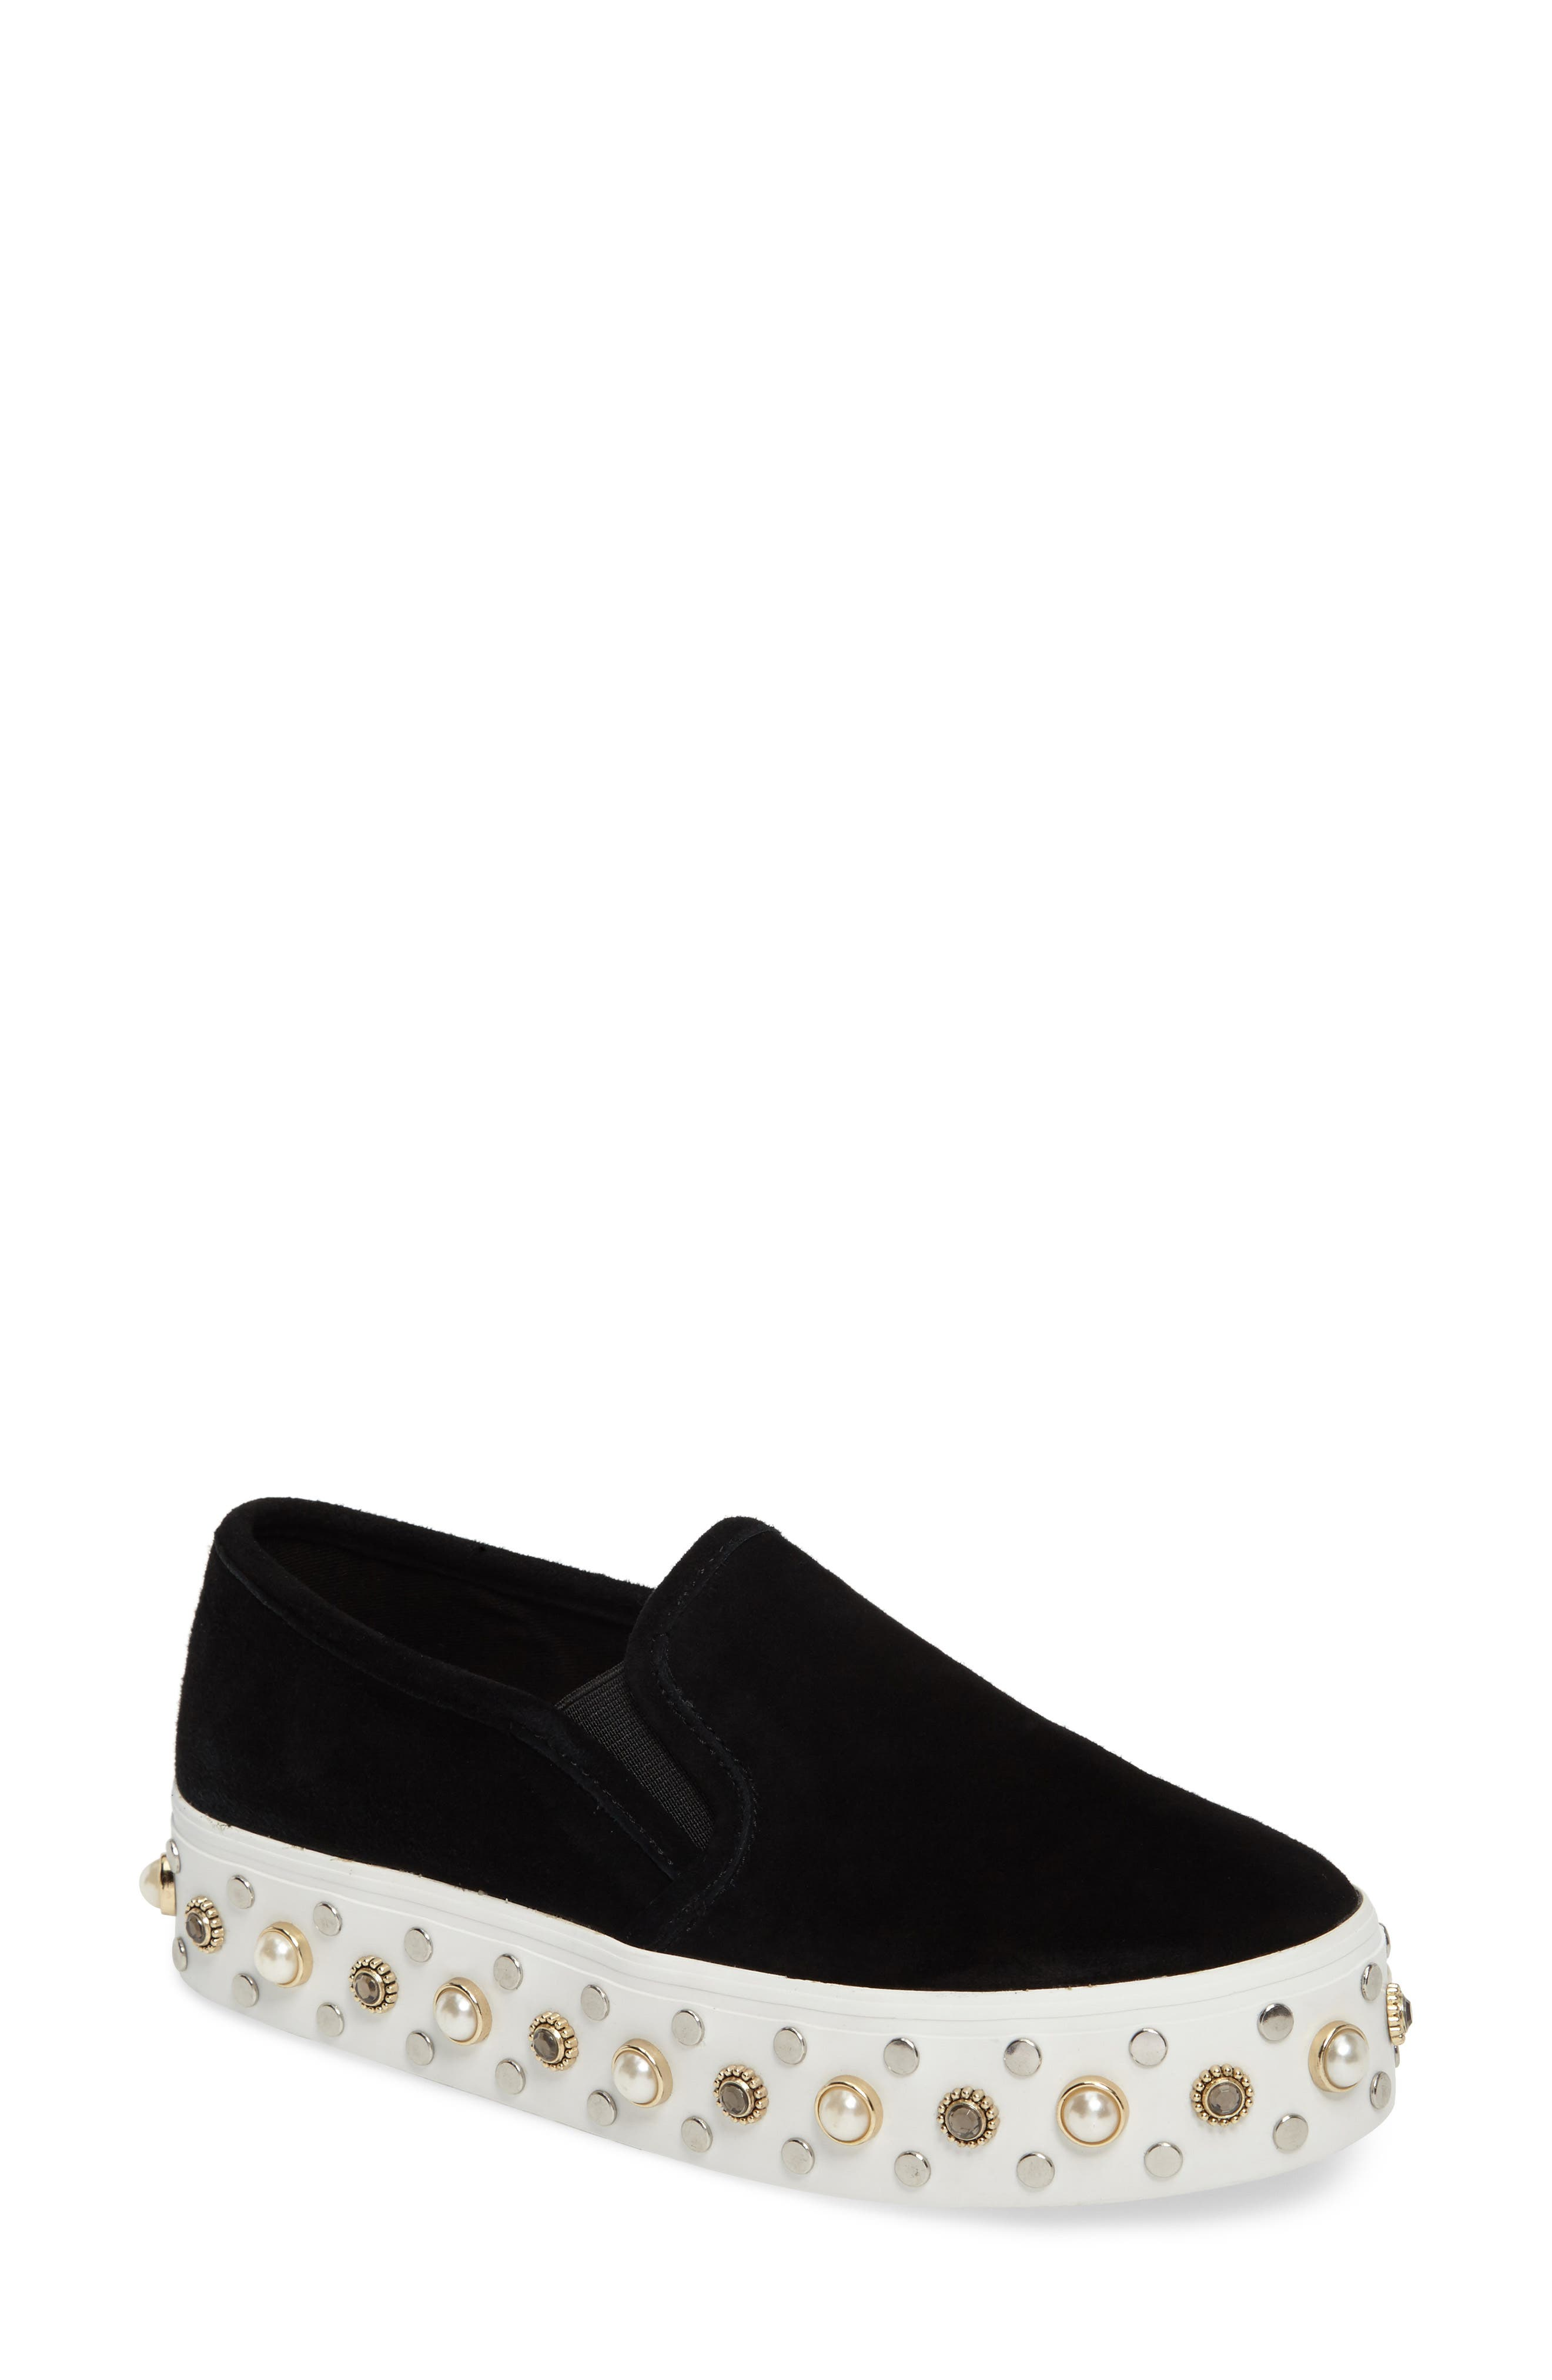 Alternate Image 1 Selected - Steve Madden Glitzy Slip-On Sneaker (Women)